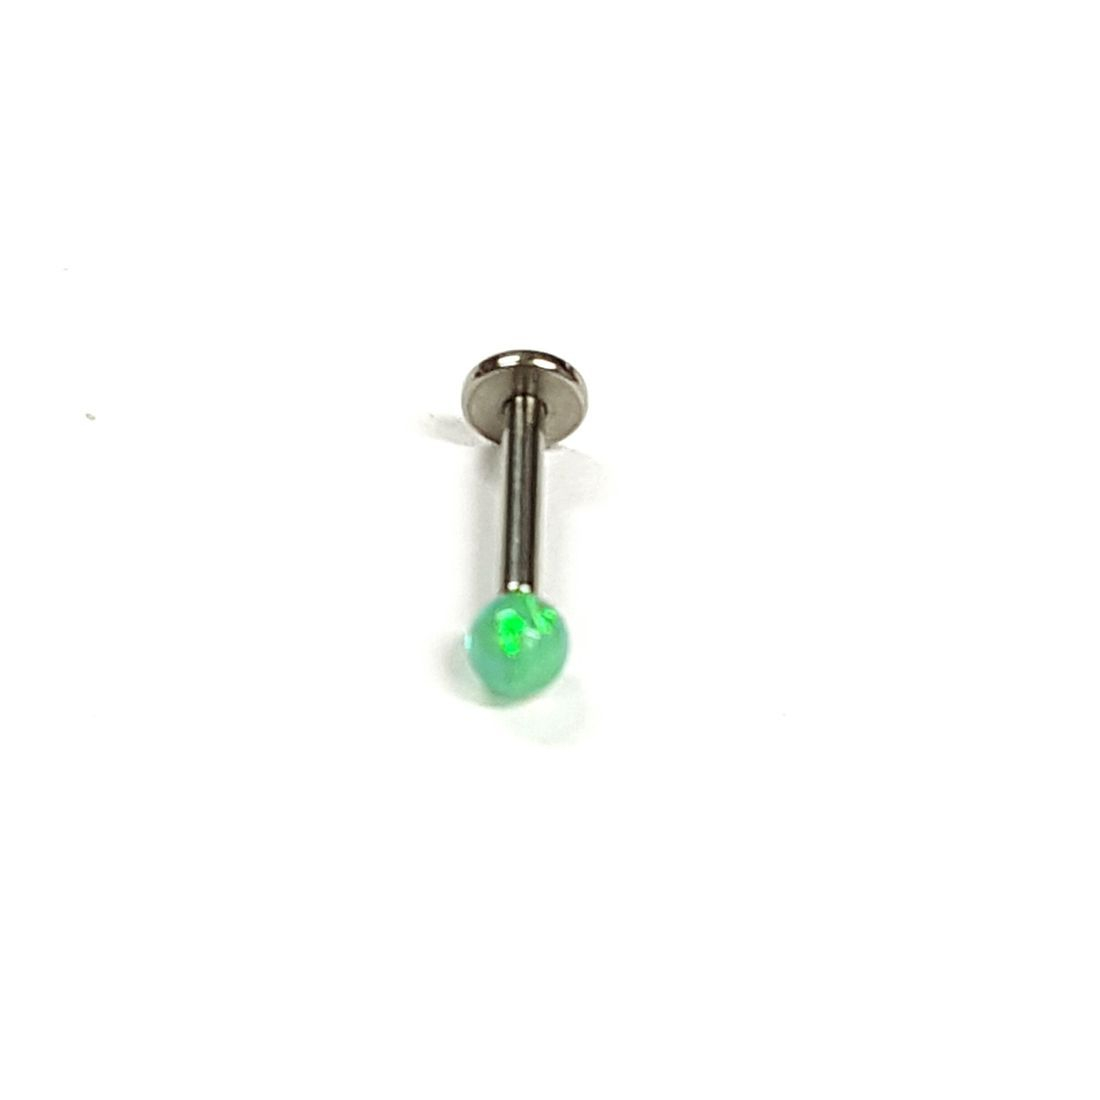 1.2mm x 8mm Green Opal Ball Flat Back Bar   available at Kazbah online and our Leicester City Centre Shop